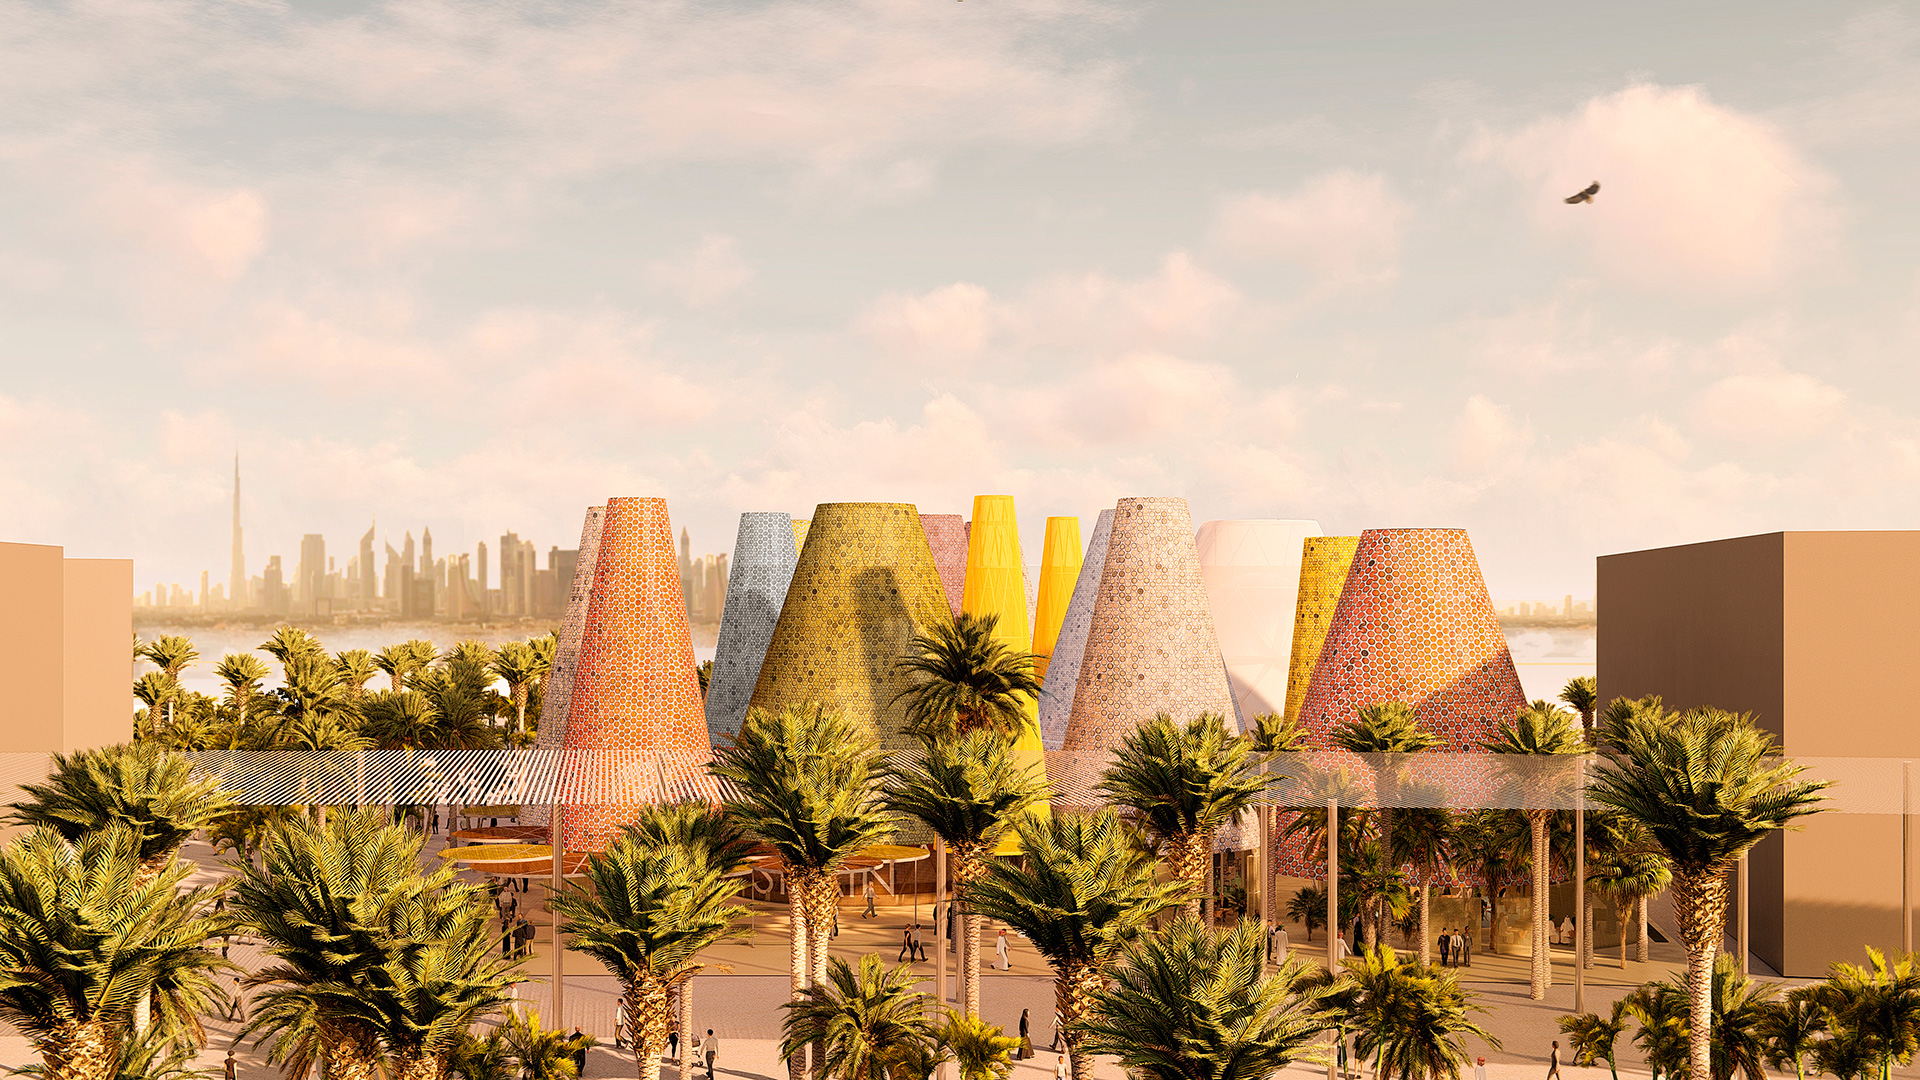 The Spain Pavilion designed by Amann-Canovas-Maruri | Sustainability | Pavilion | Expo 2020| Dubai| STIRworld